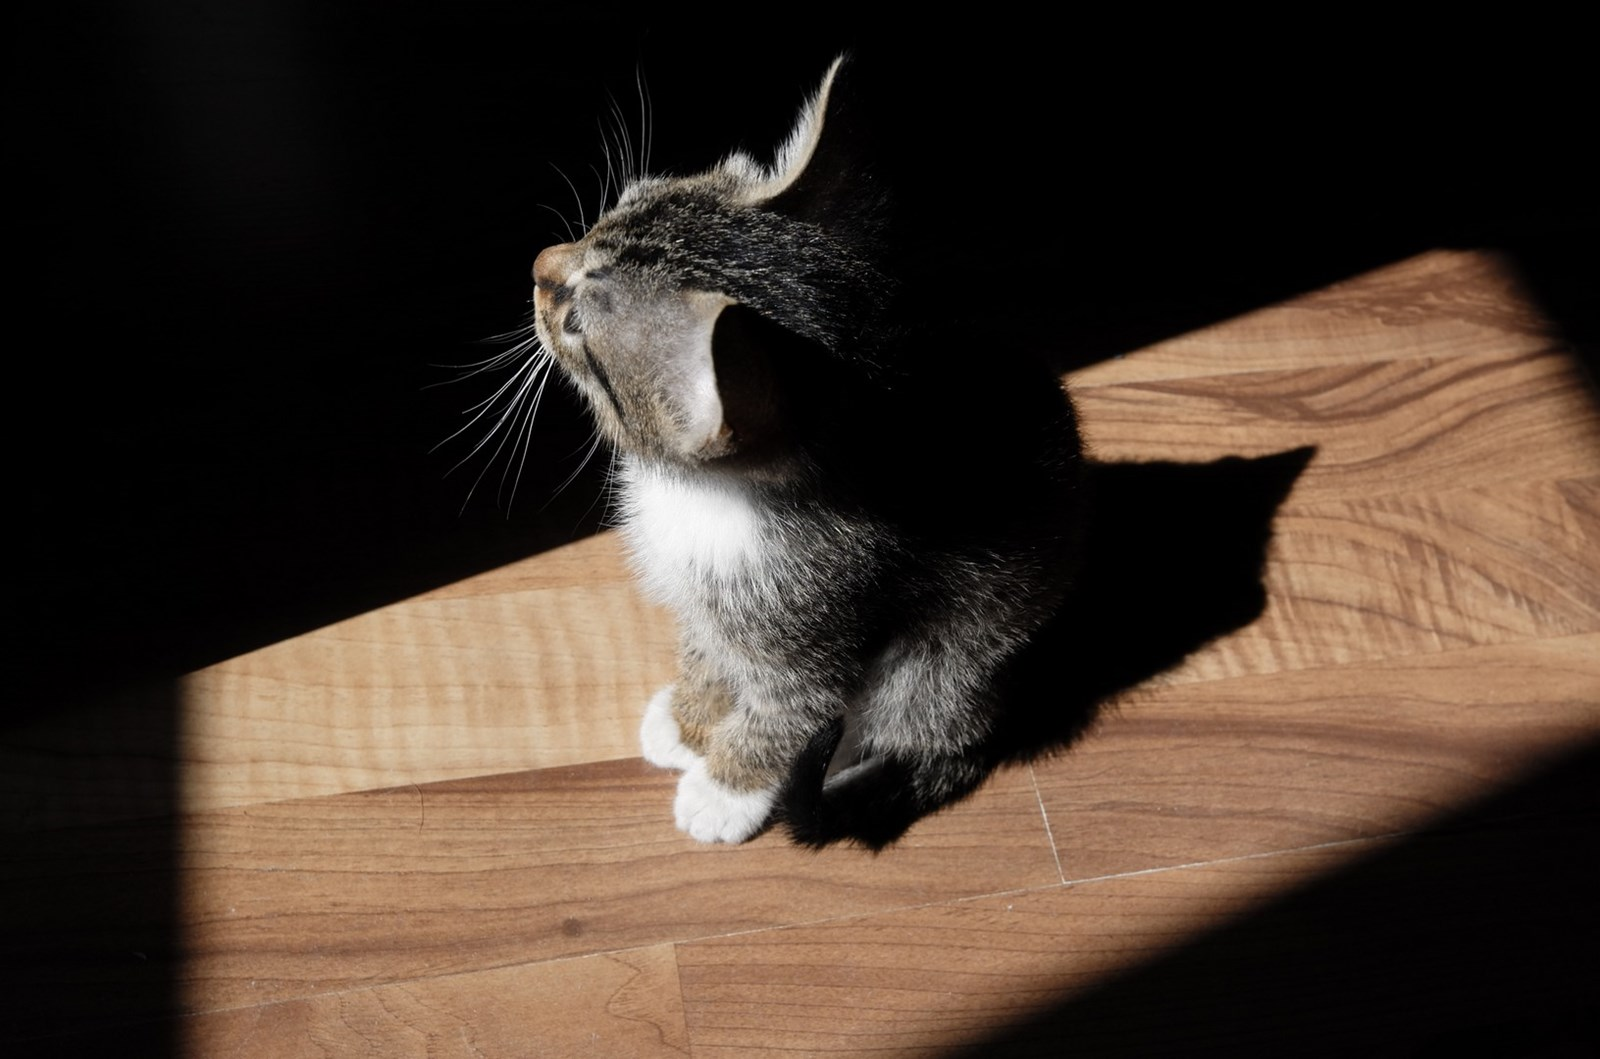 cat standing on wooden play looking away